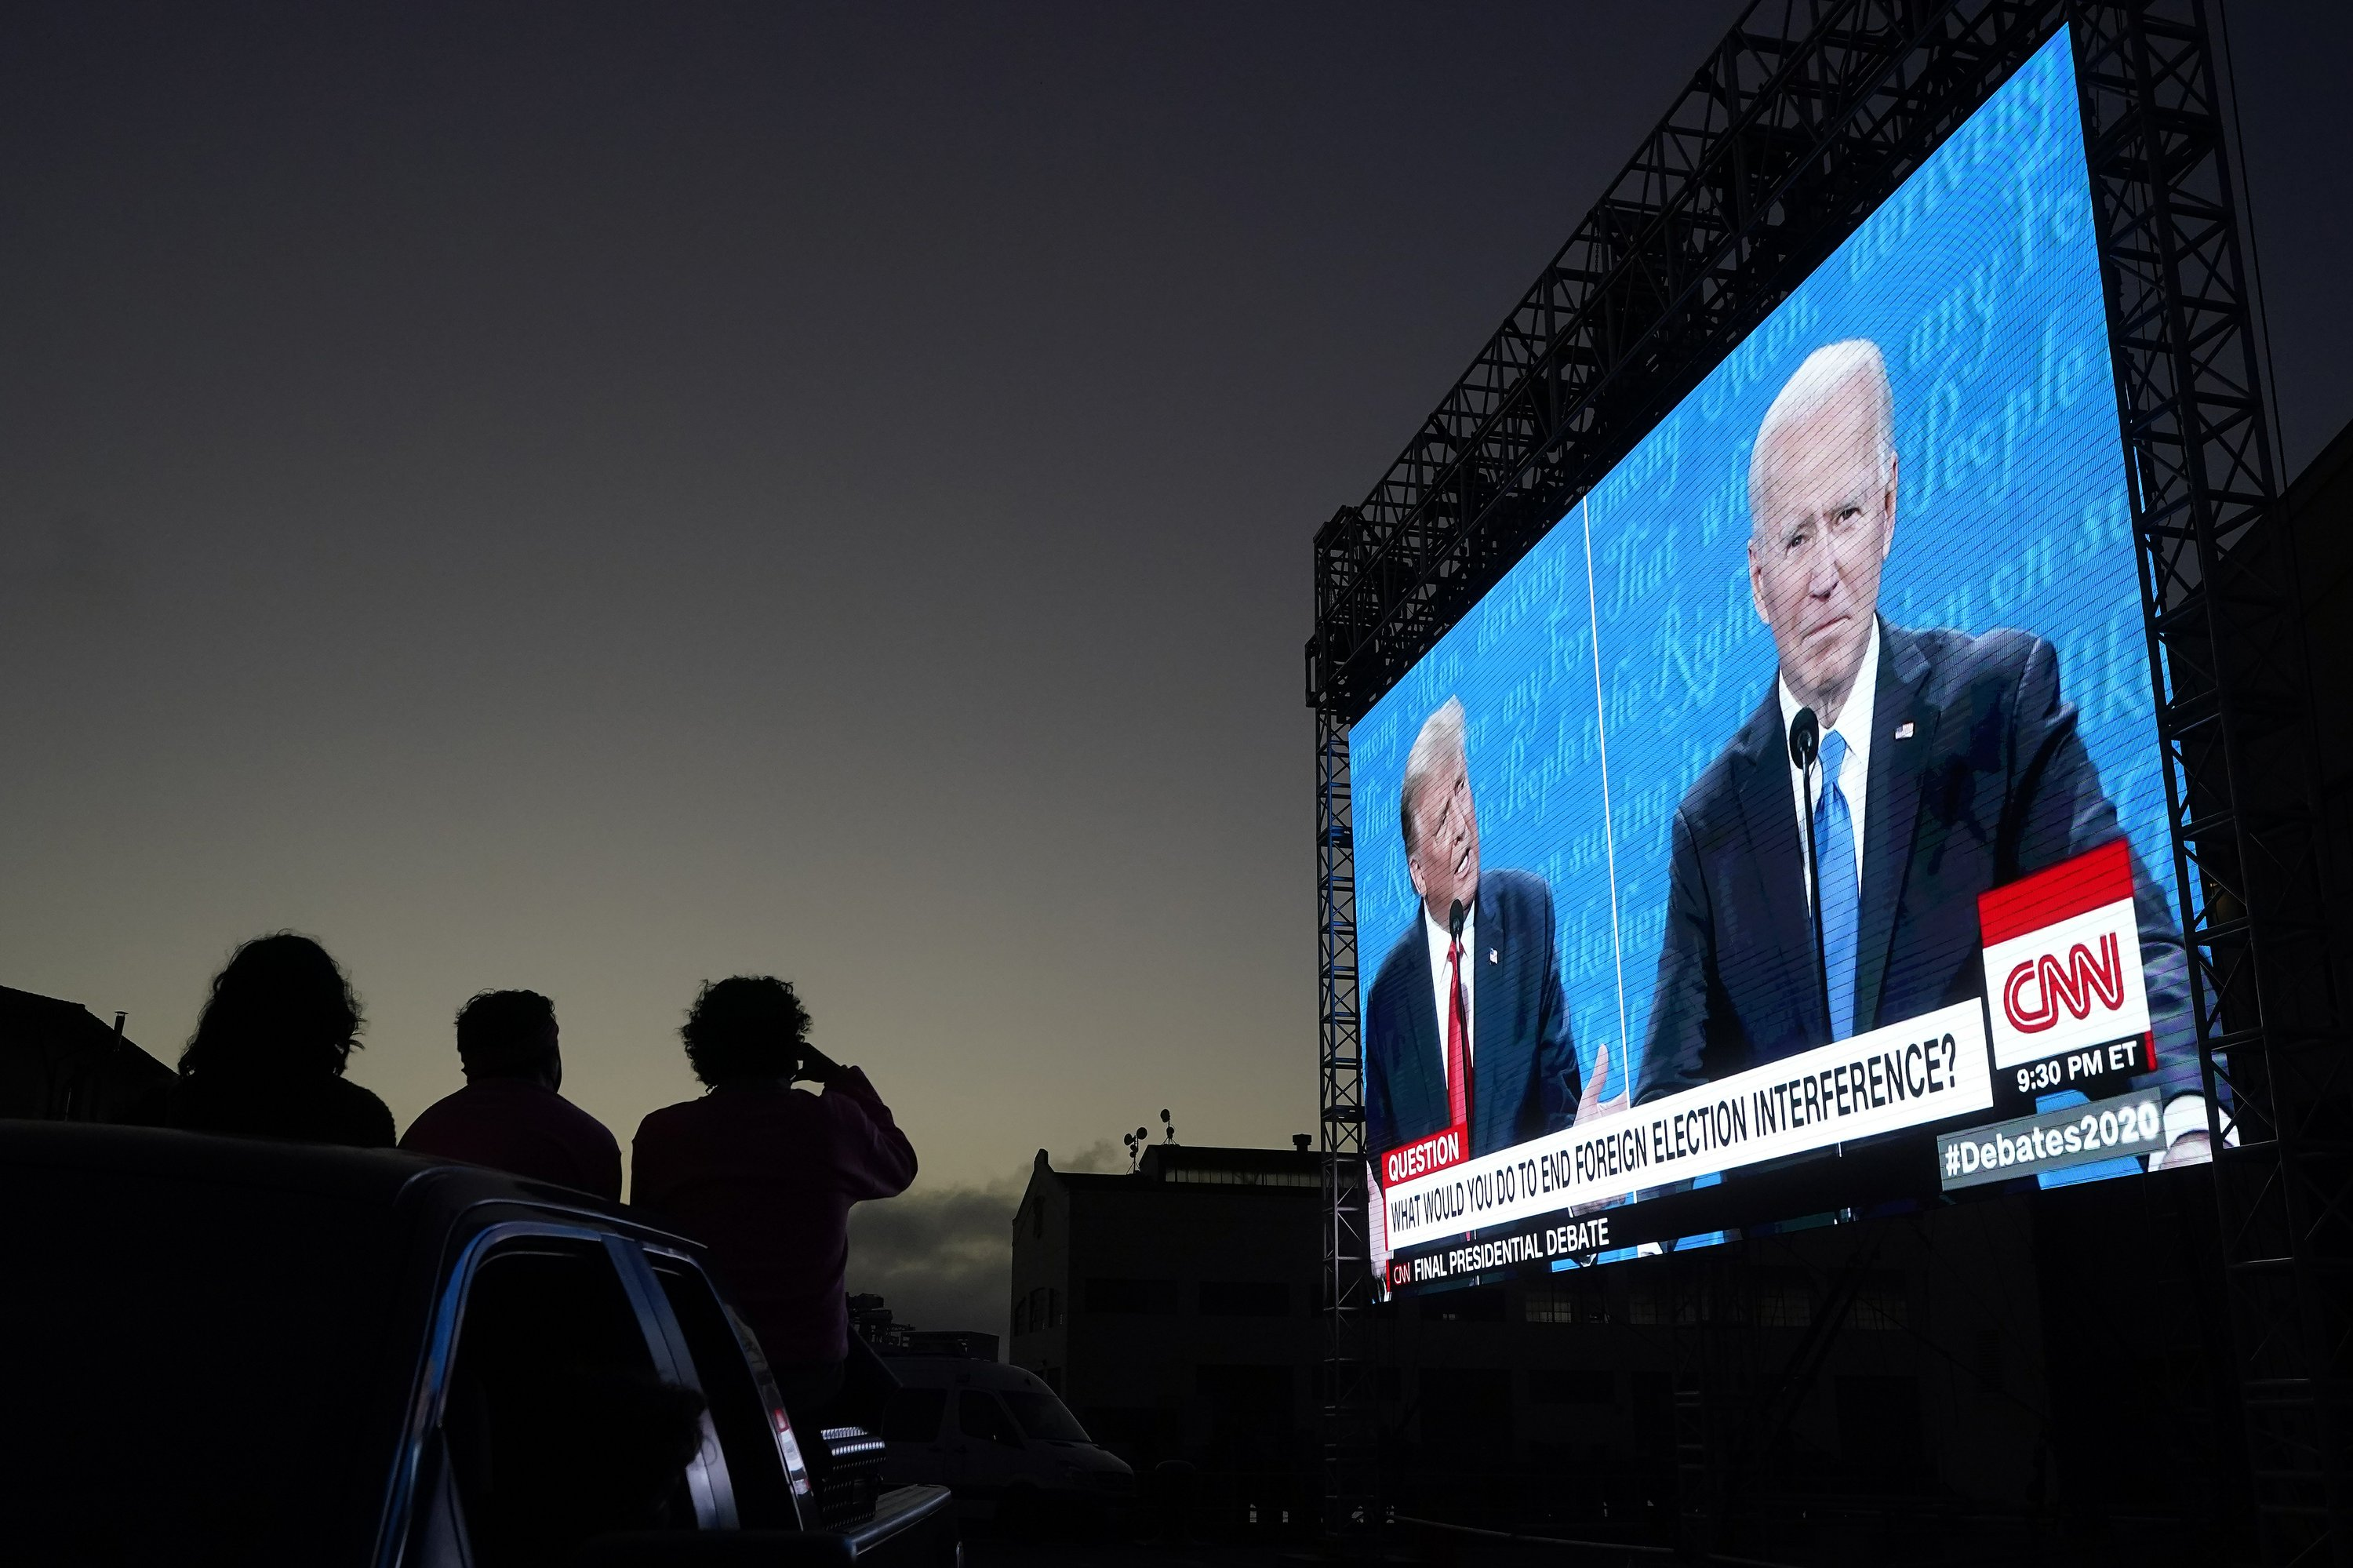 An estimated 63 million people watched the final presidential debate between President Donald Trump and Democratic opponent Joe Biden, according to the Nielsen company. That's 10 million fewer than watched the first debate.